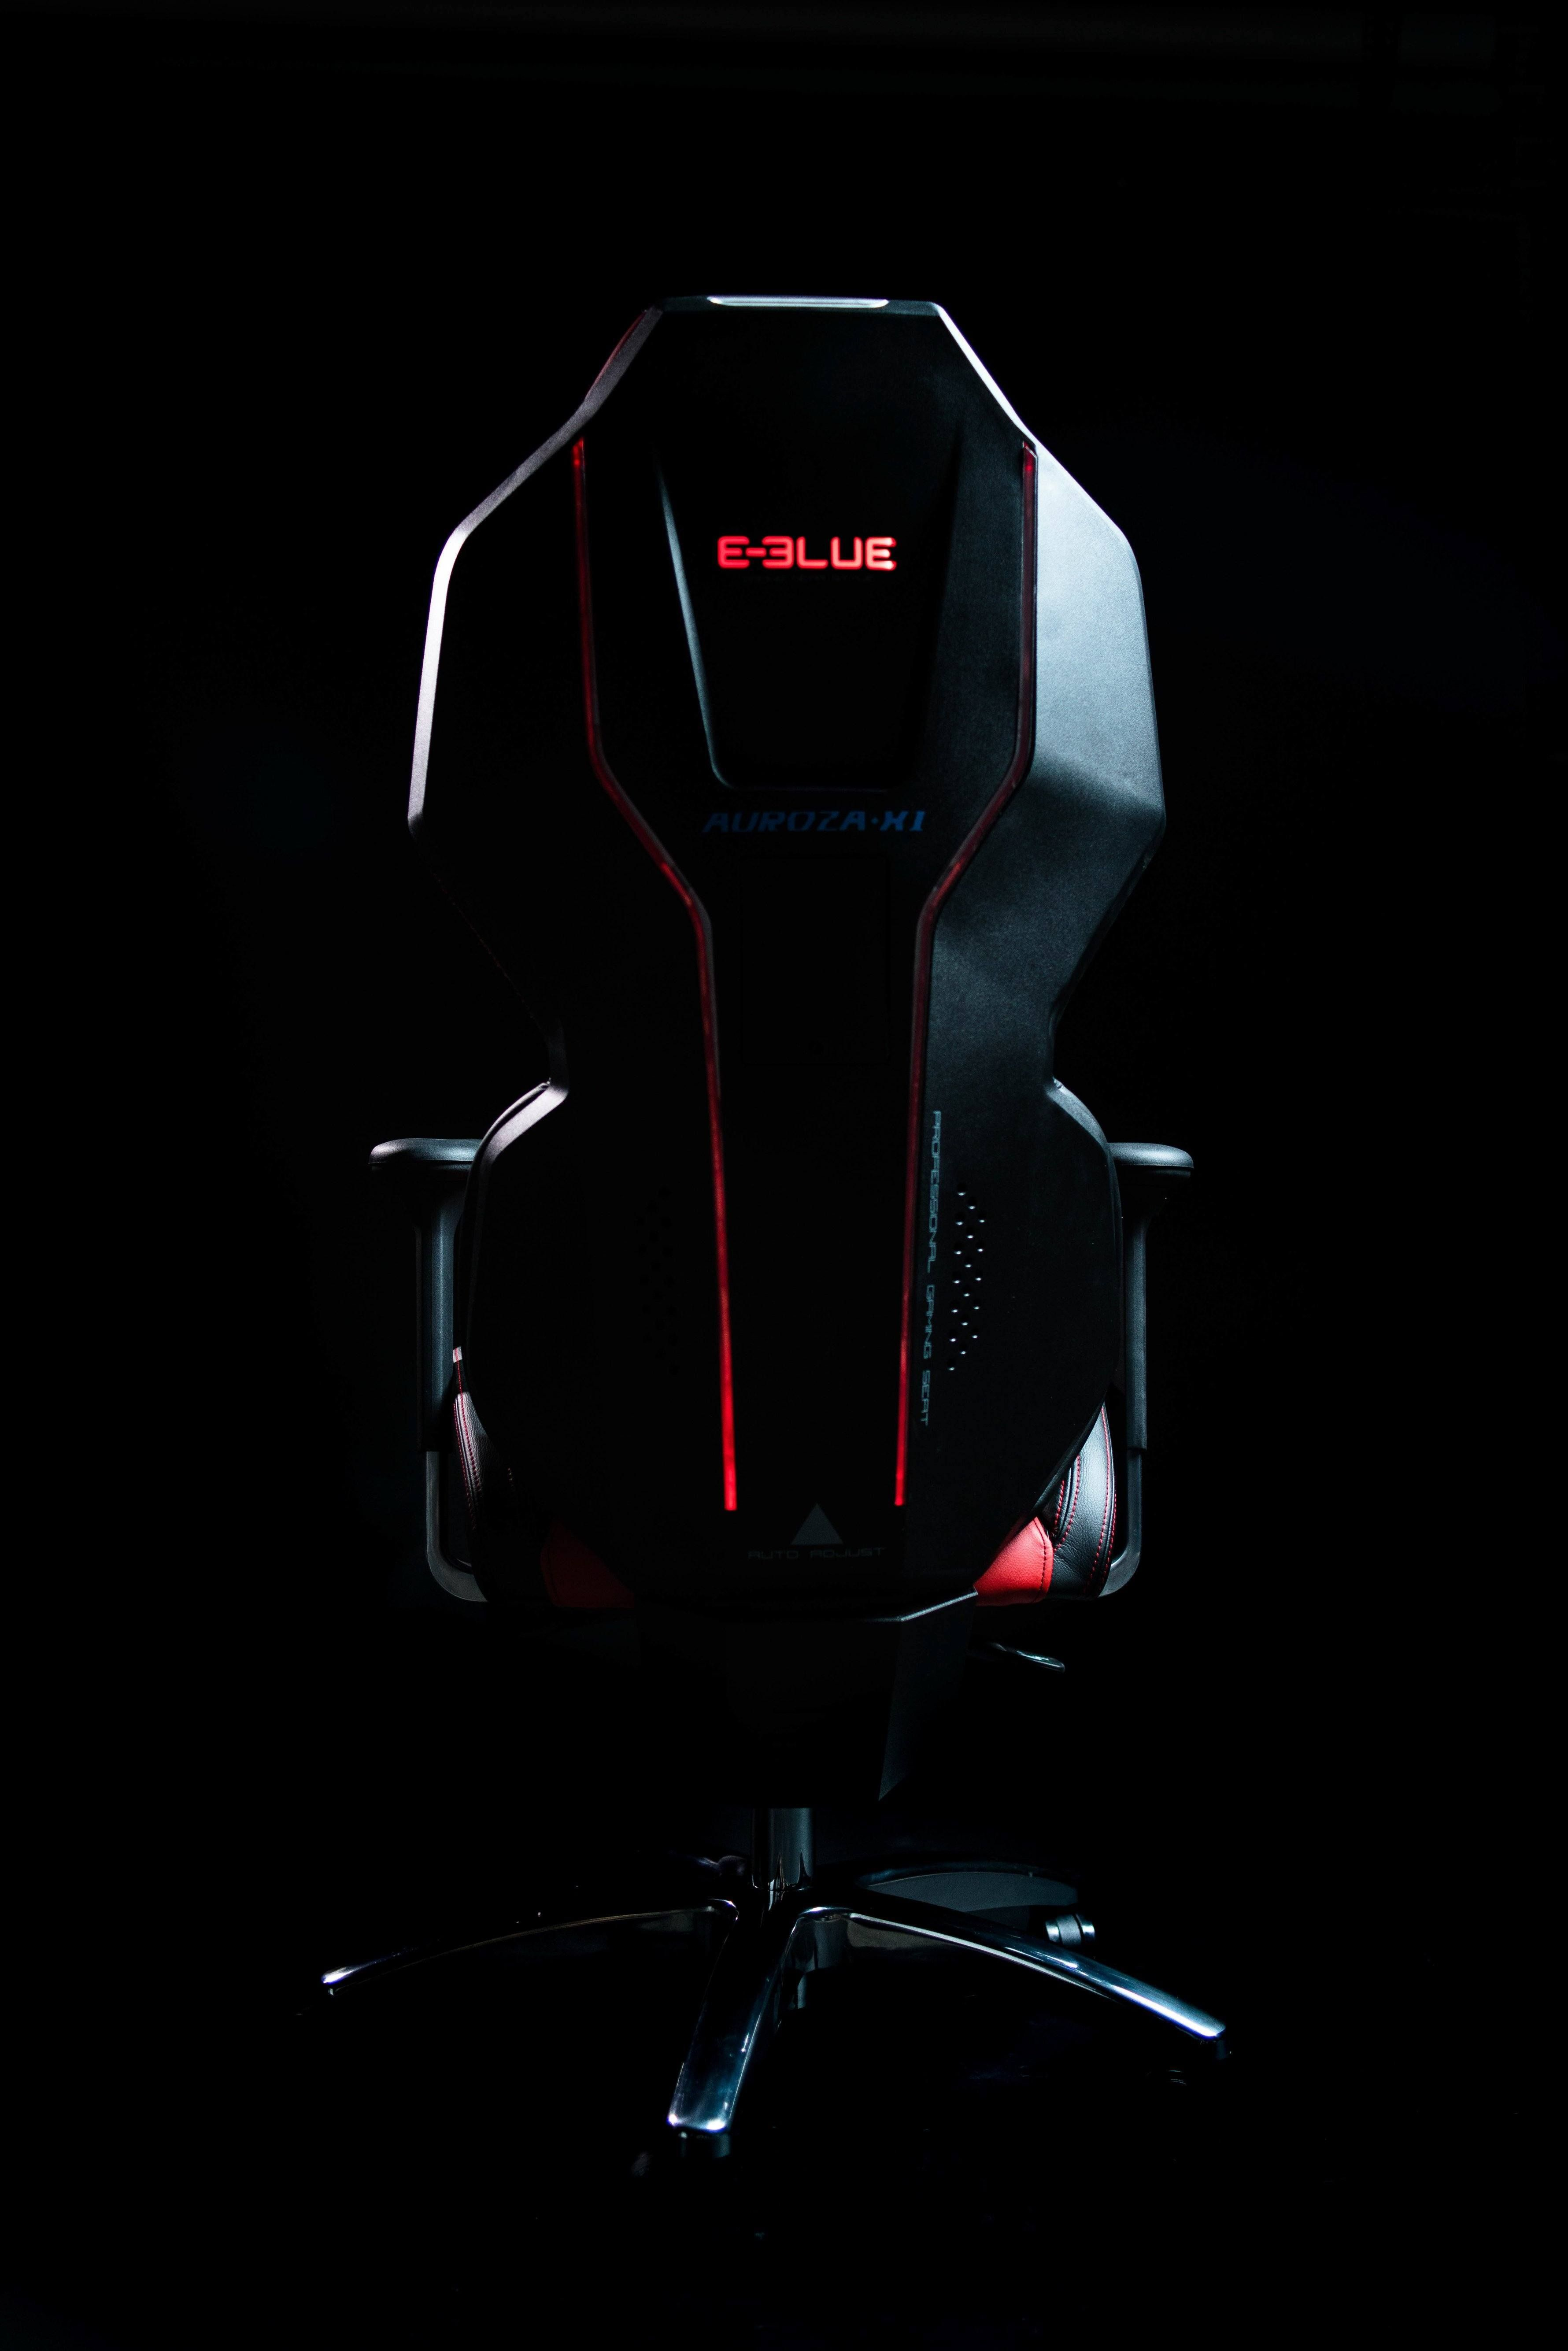 Auroza xi glow pc gaming chair Best pc, Pc gaming chair